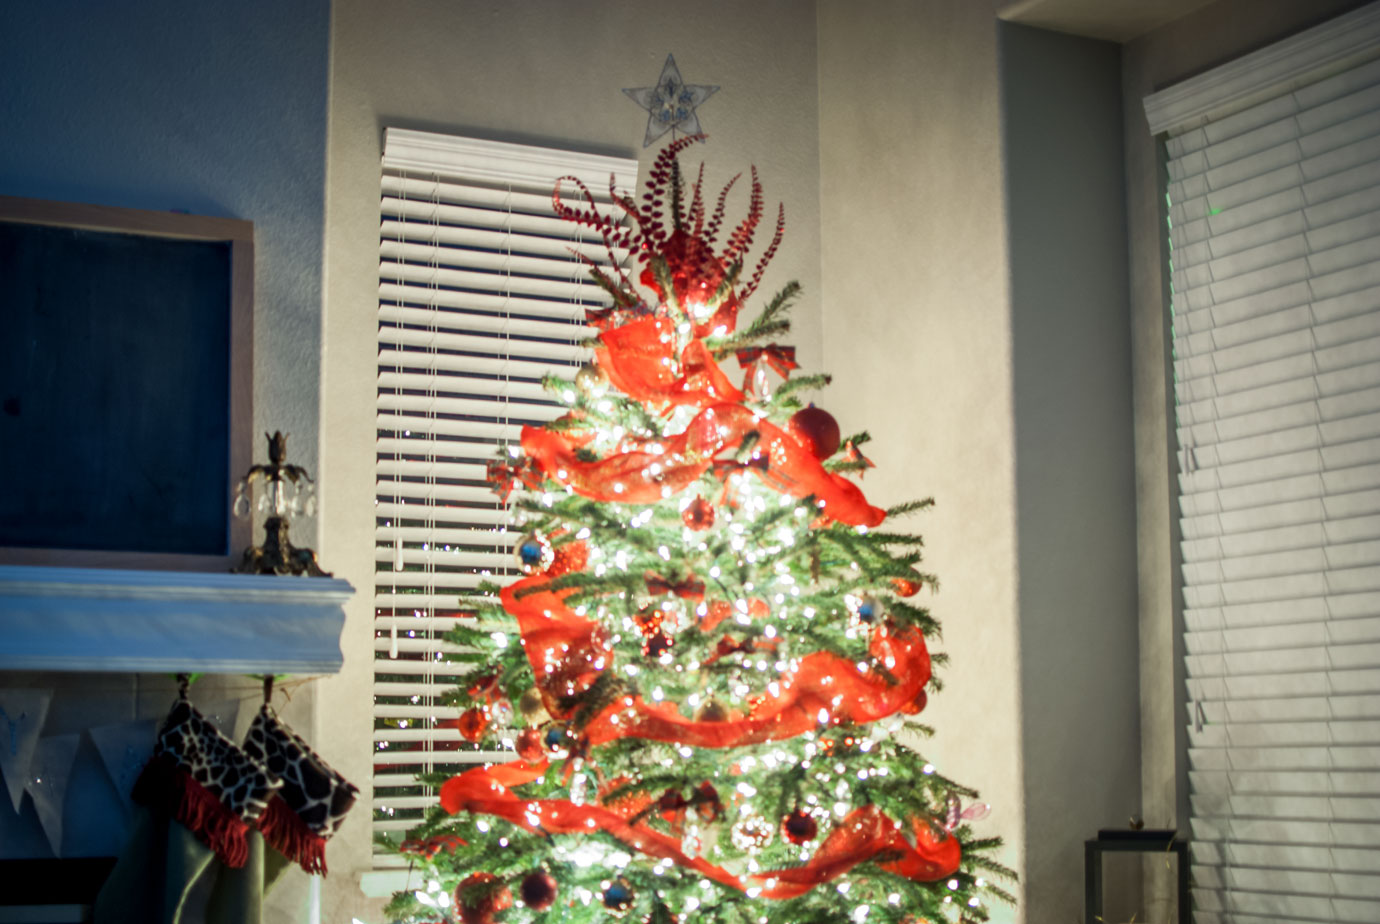 Red Christmas Tree Decor and Top of Tree #ChristmasTreeDecor